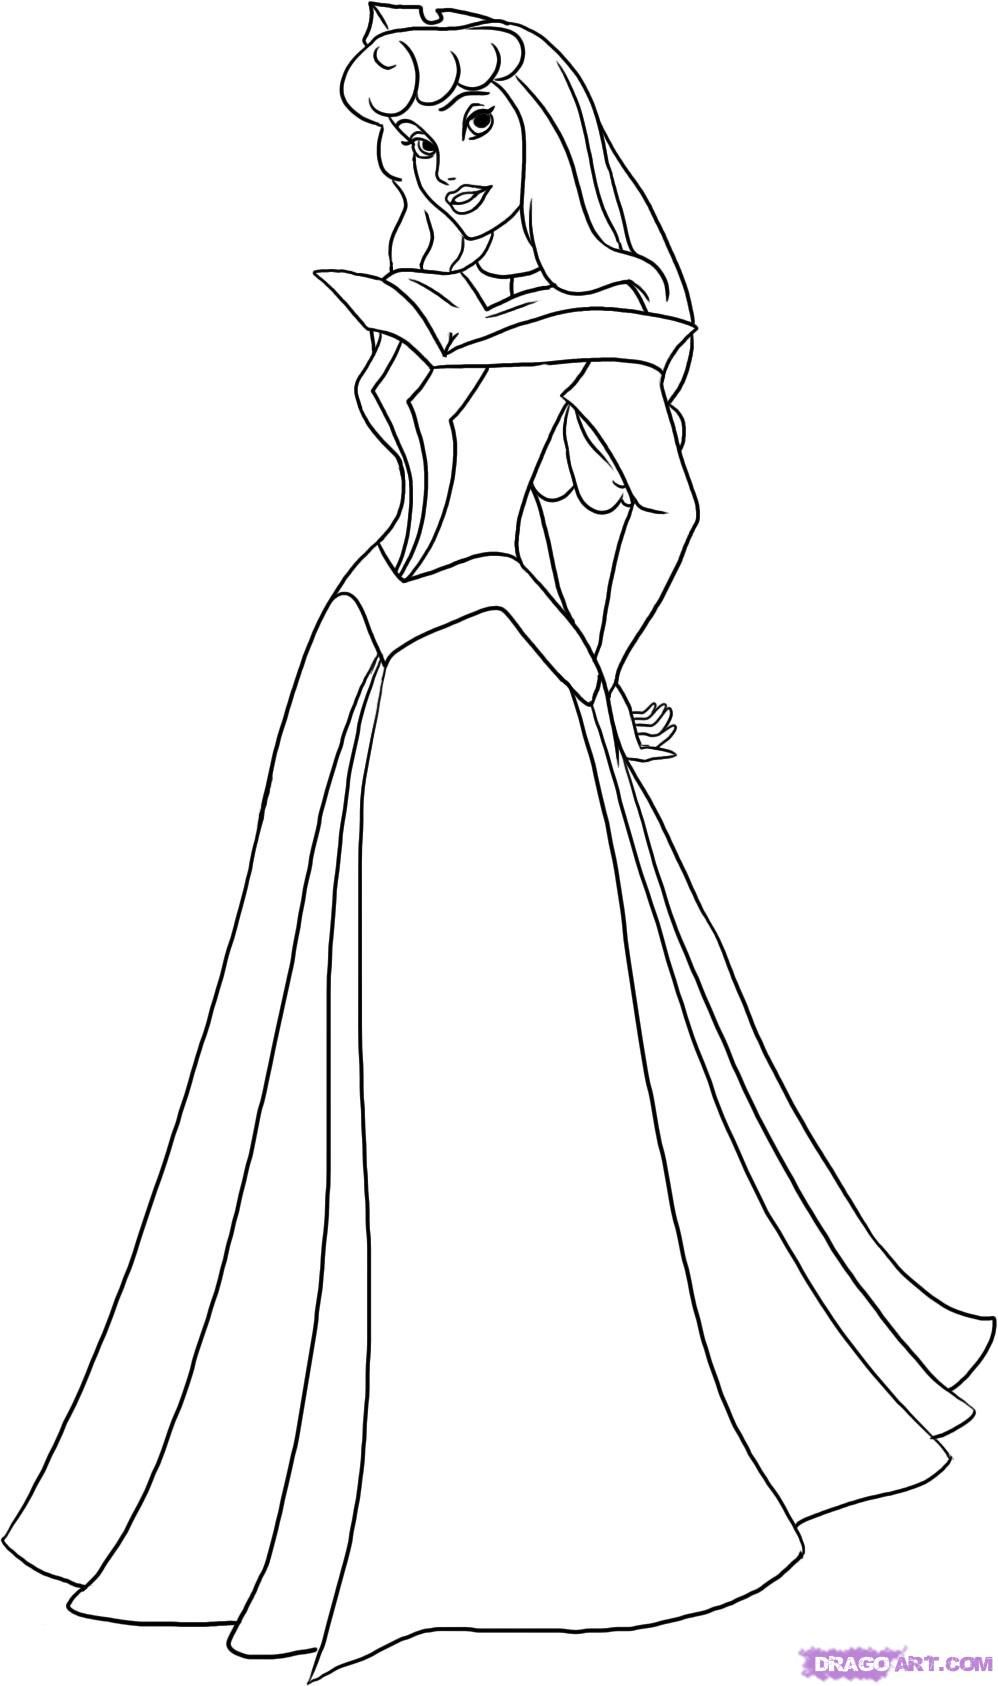 Princess aurora coloring pages games - Princess Aurora Coloring Page